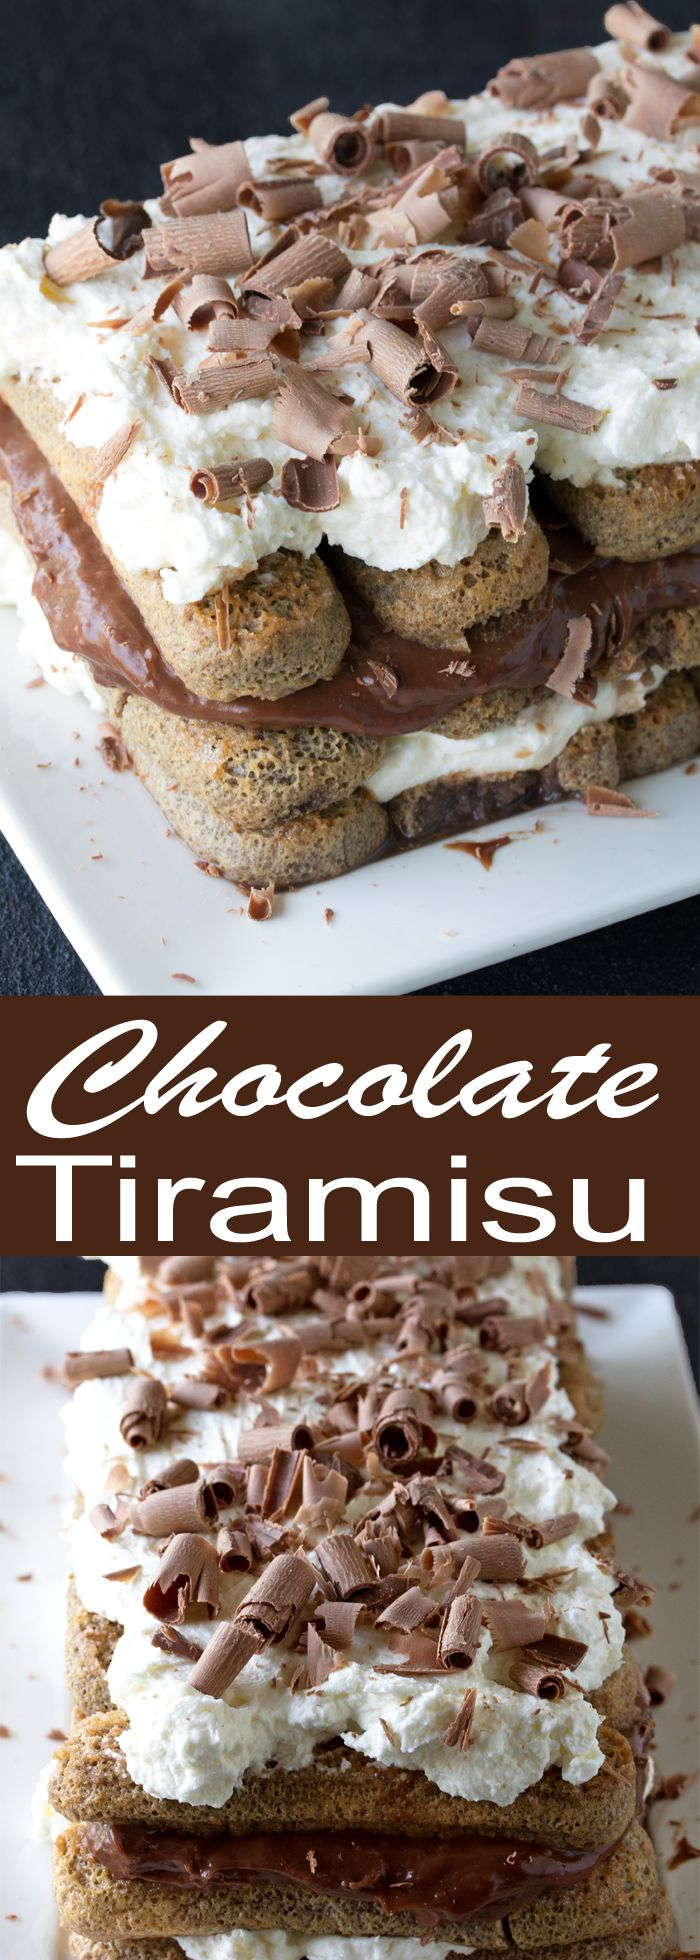 Chocolate lovers will be in heaven with Chocolate Tiramisu. Chocolate soaked lady fingers are layered with mascarpone cream and chocolate custard in this alcohol and coffee free take on the classic tiramisu.